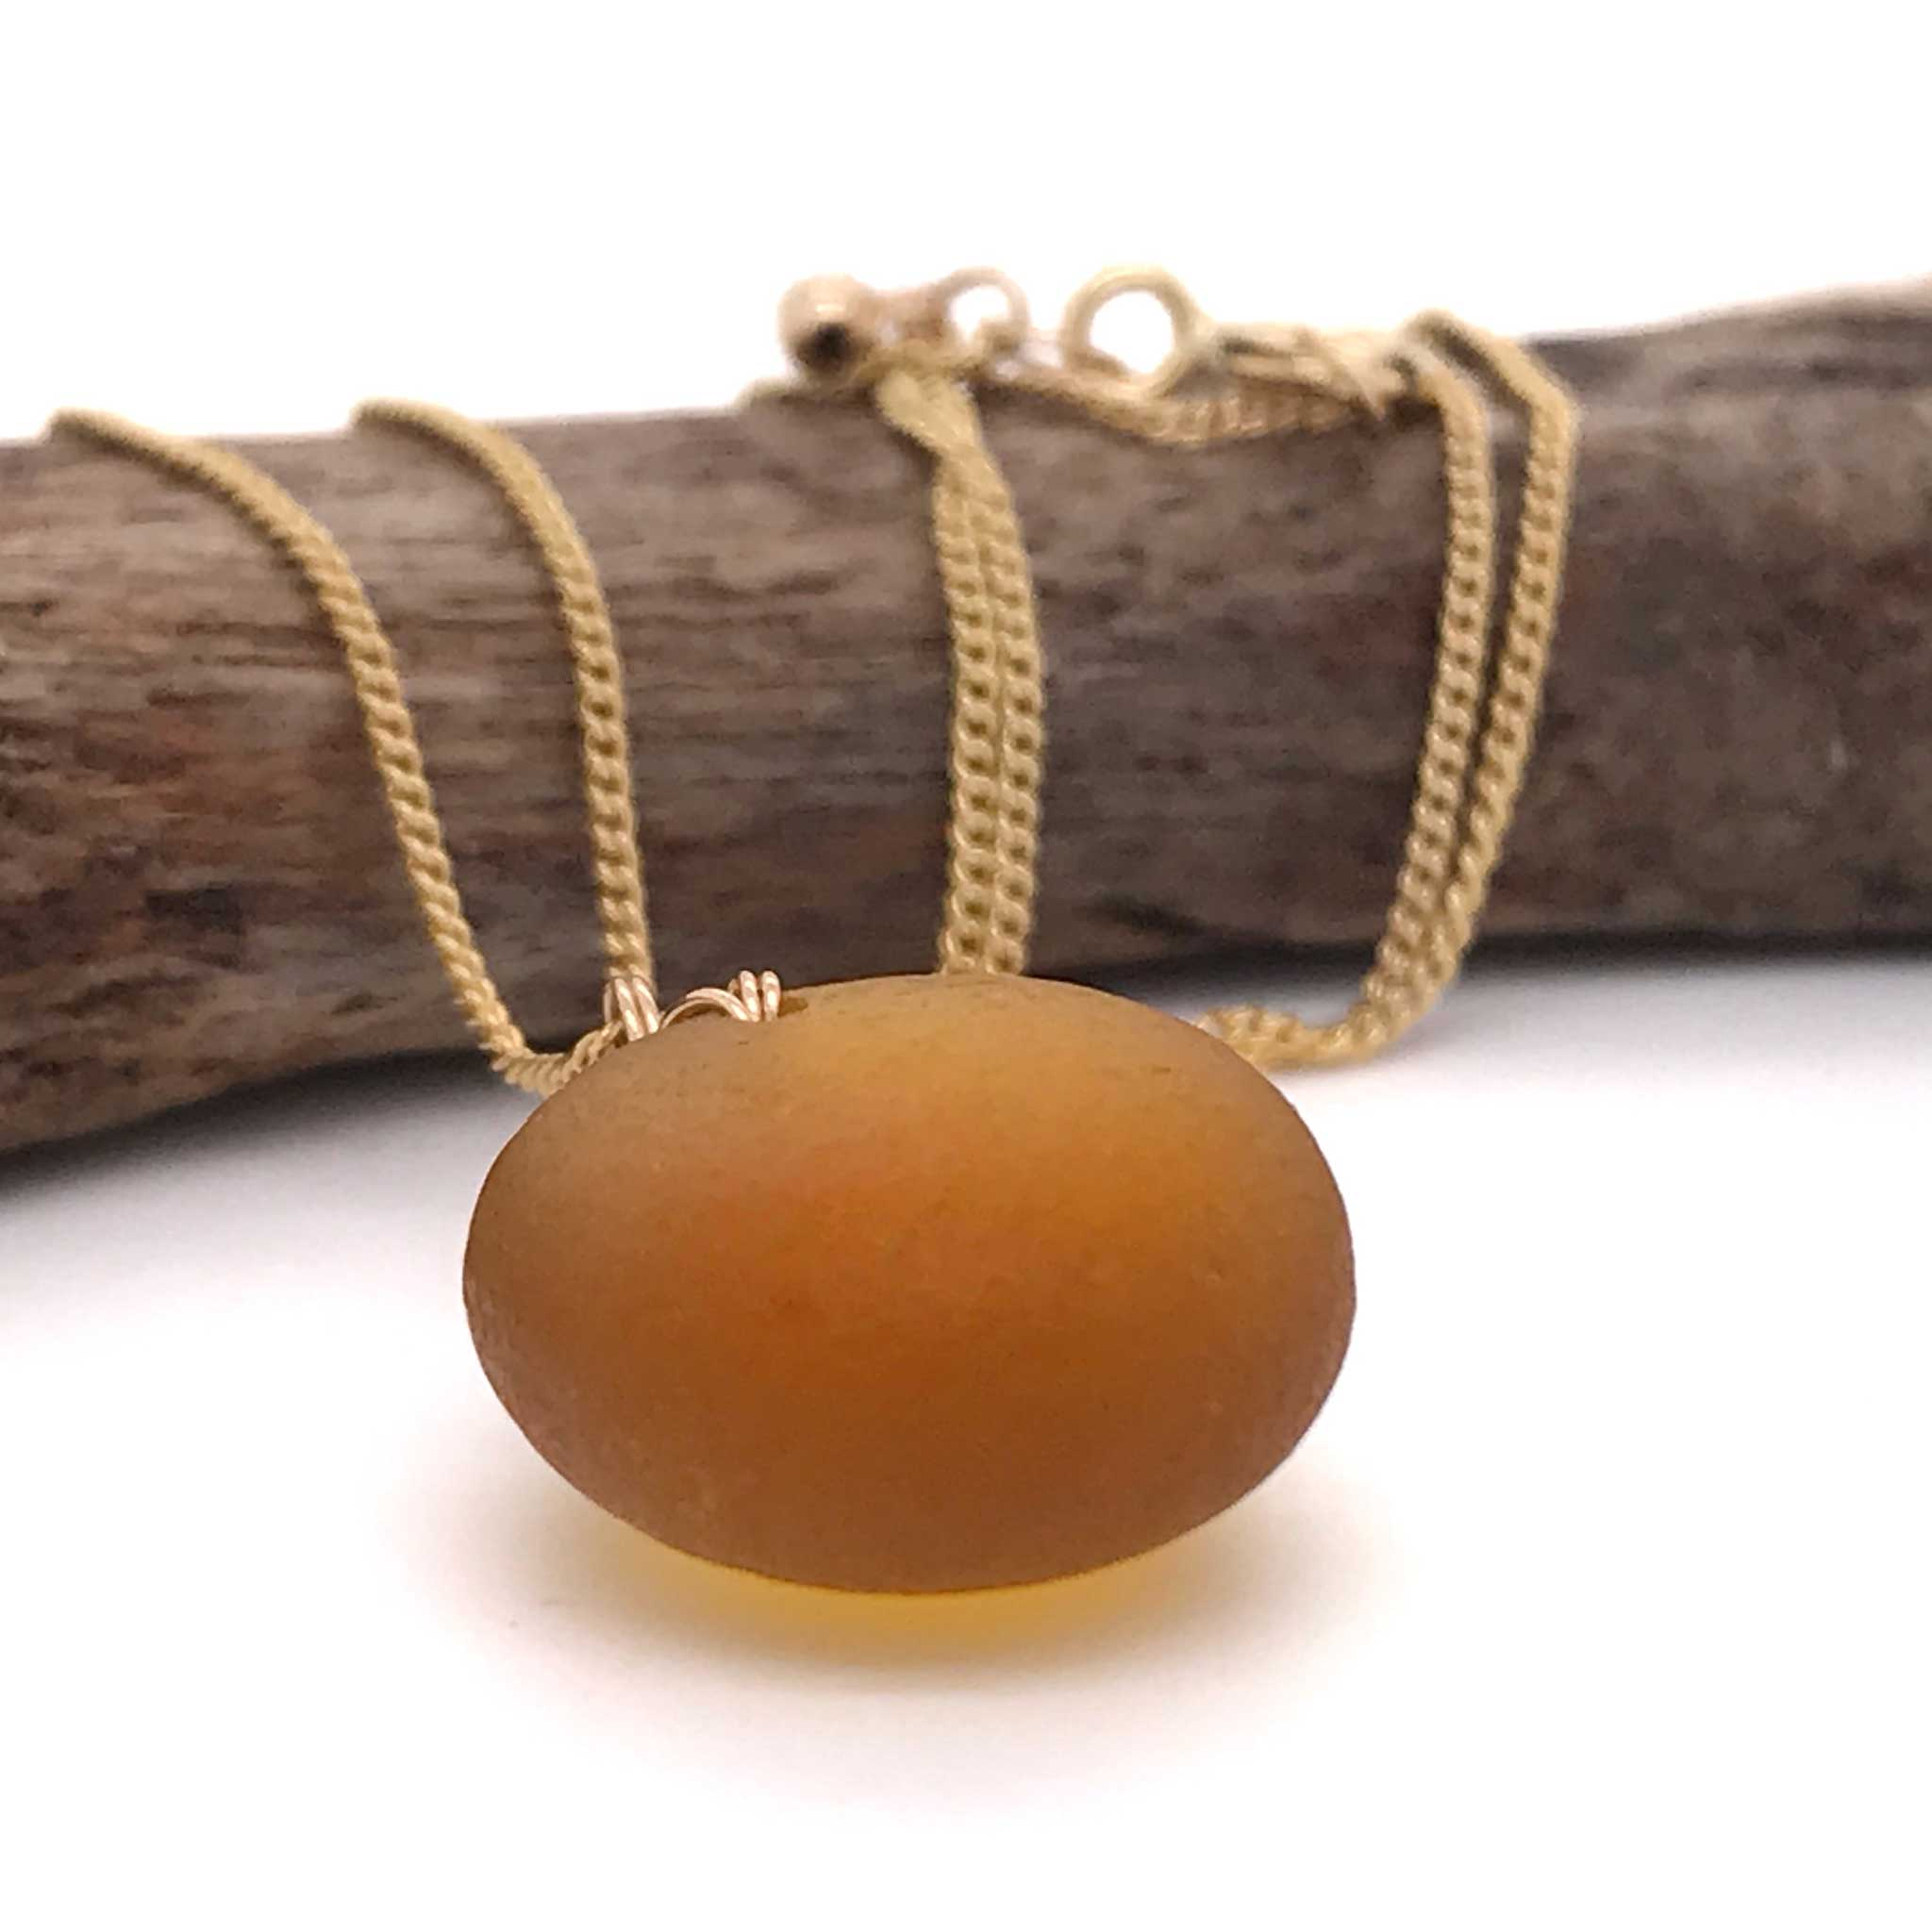 amber beach glass pendant on fine gold necklace kriket broadhurst jewellery made in Australia